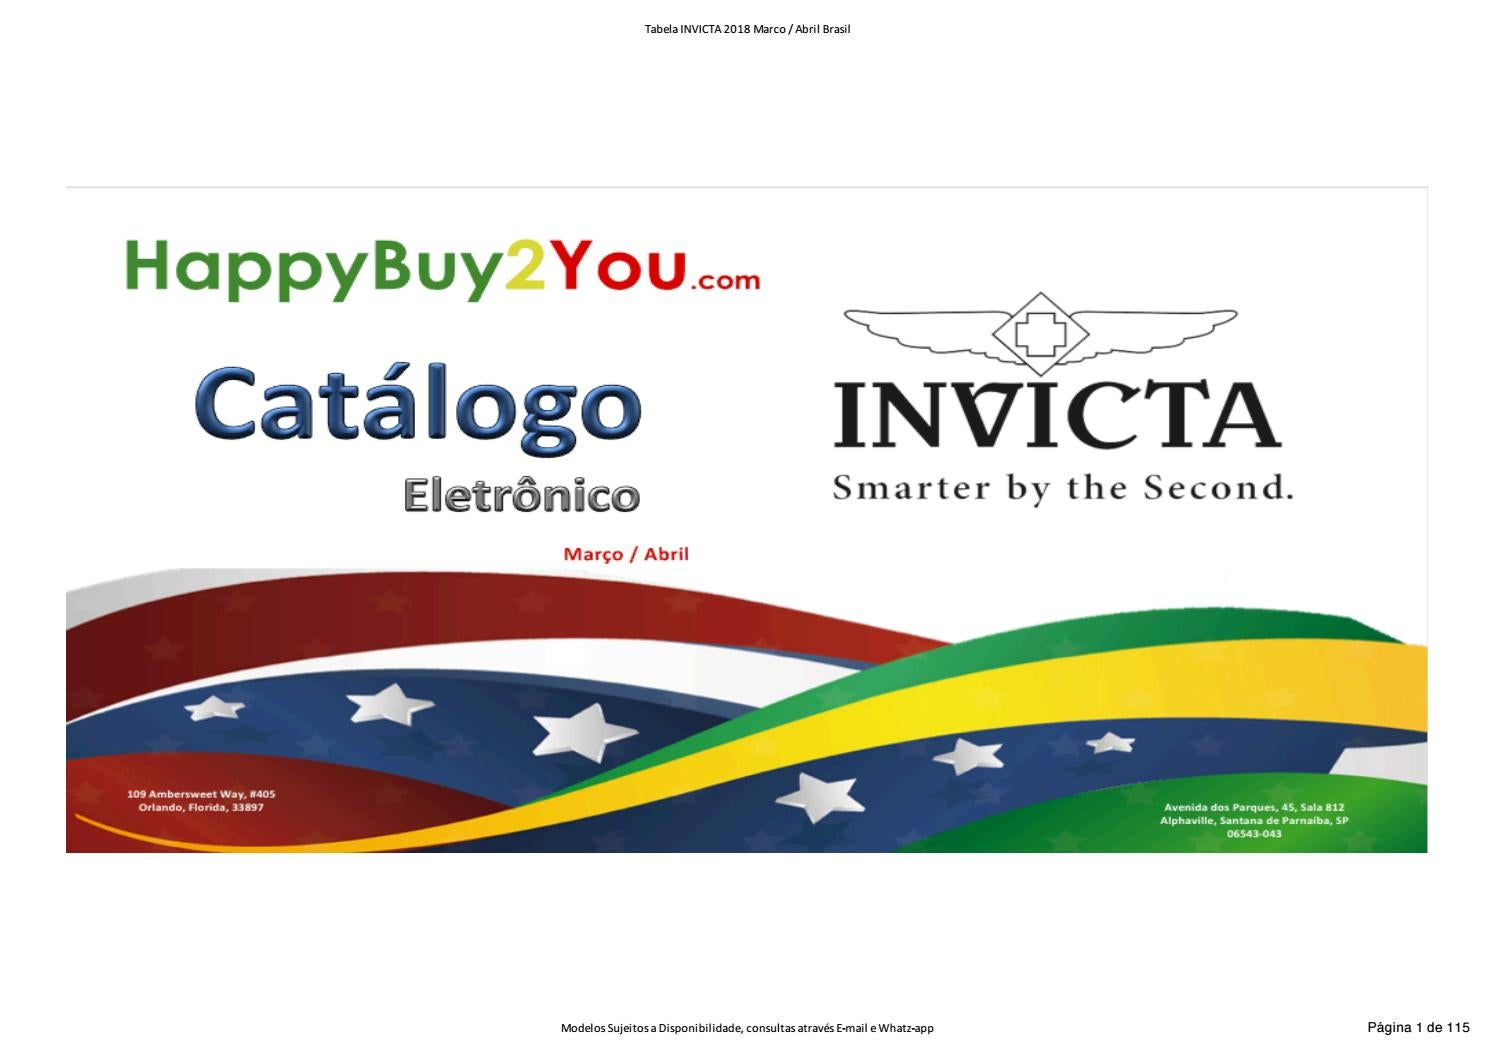 3c4de3699d6 Relogios Invicta Price List happybuy2you by HappyBuy2You - issuu